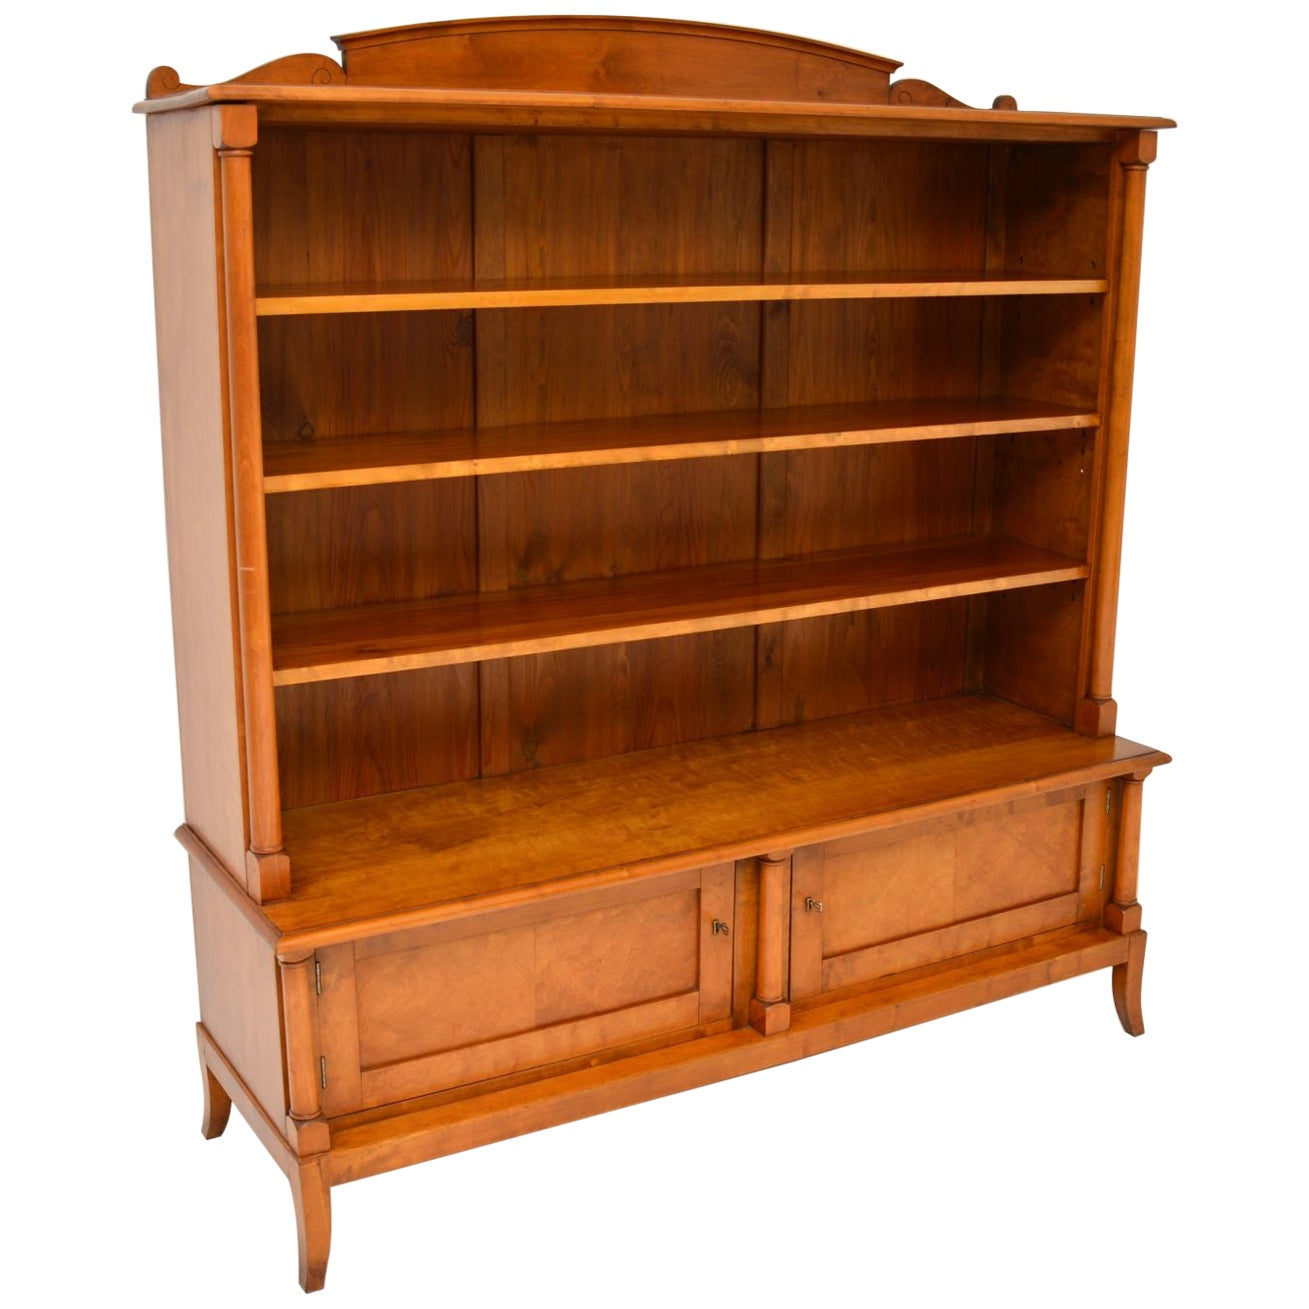 Antique Swedish Biedermeier Satin Birch Bookcase